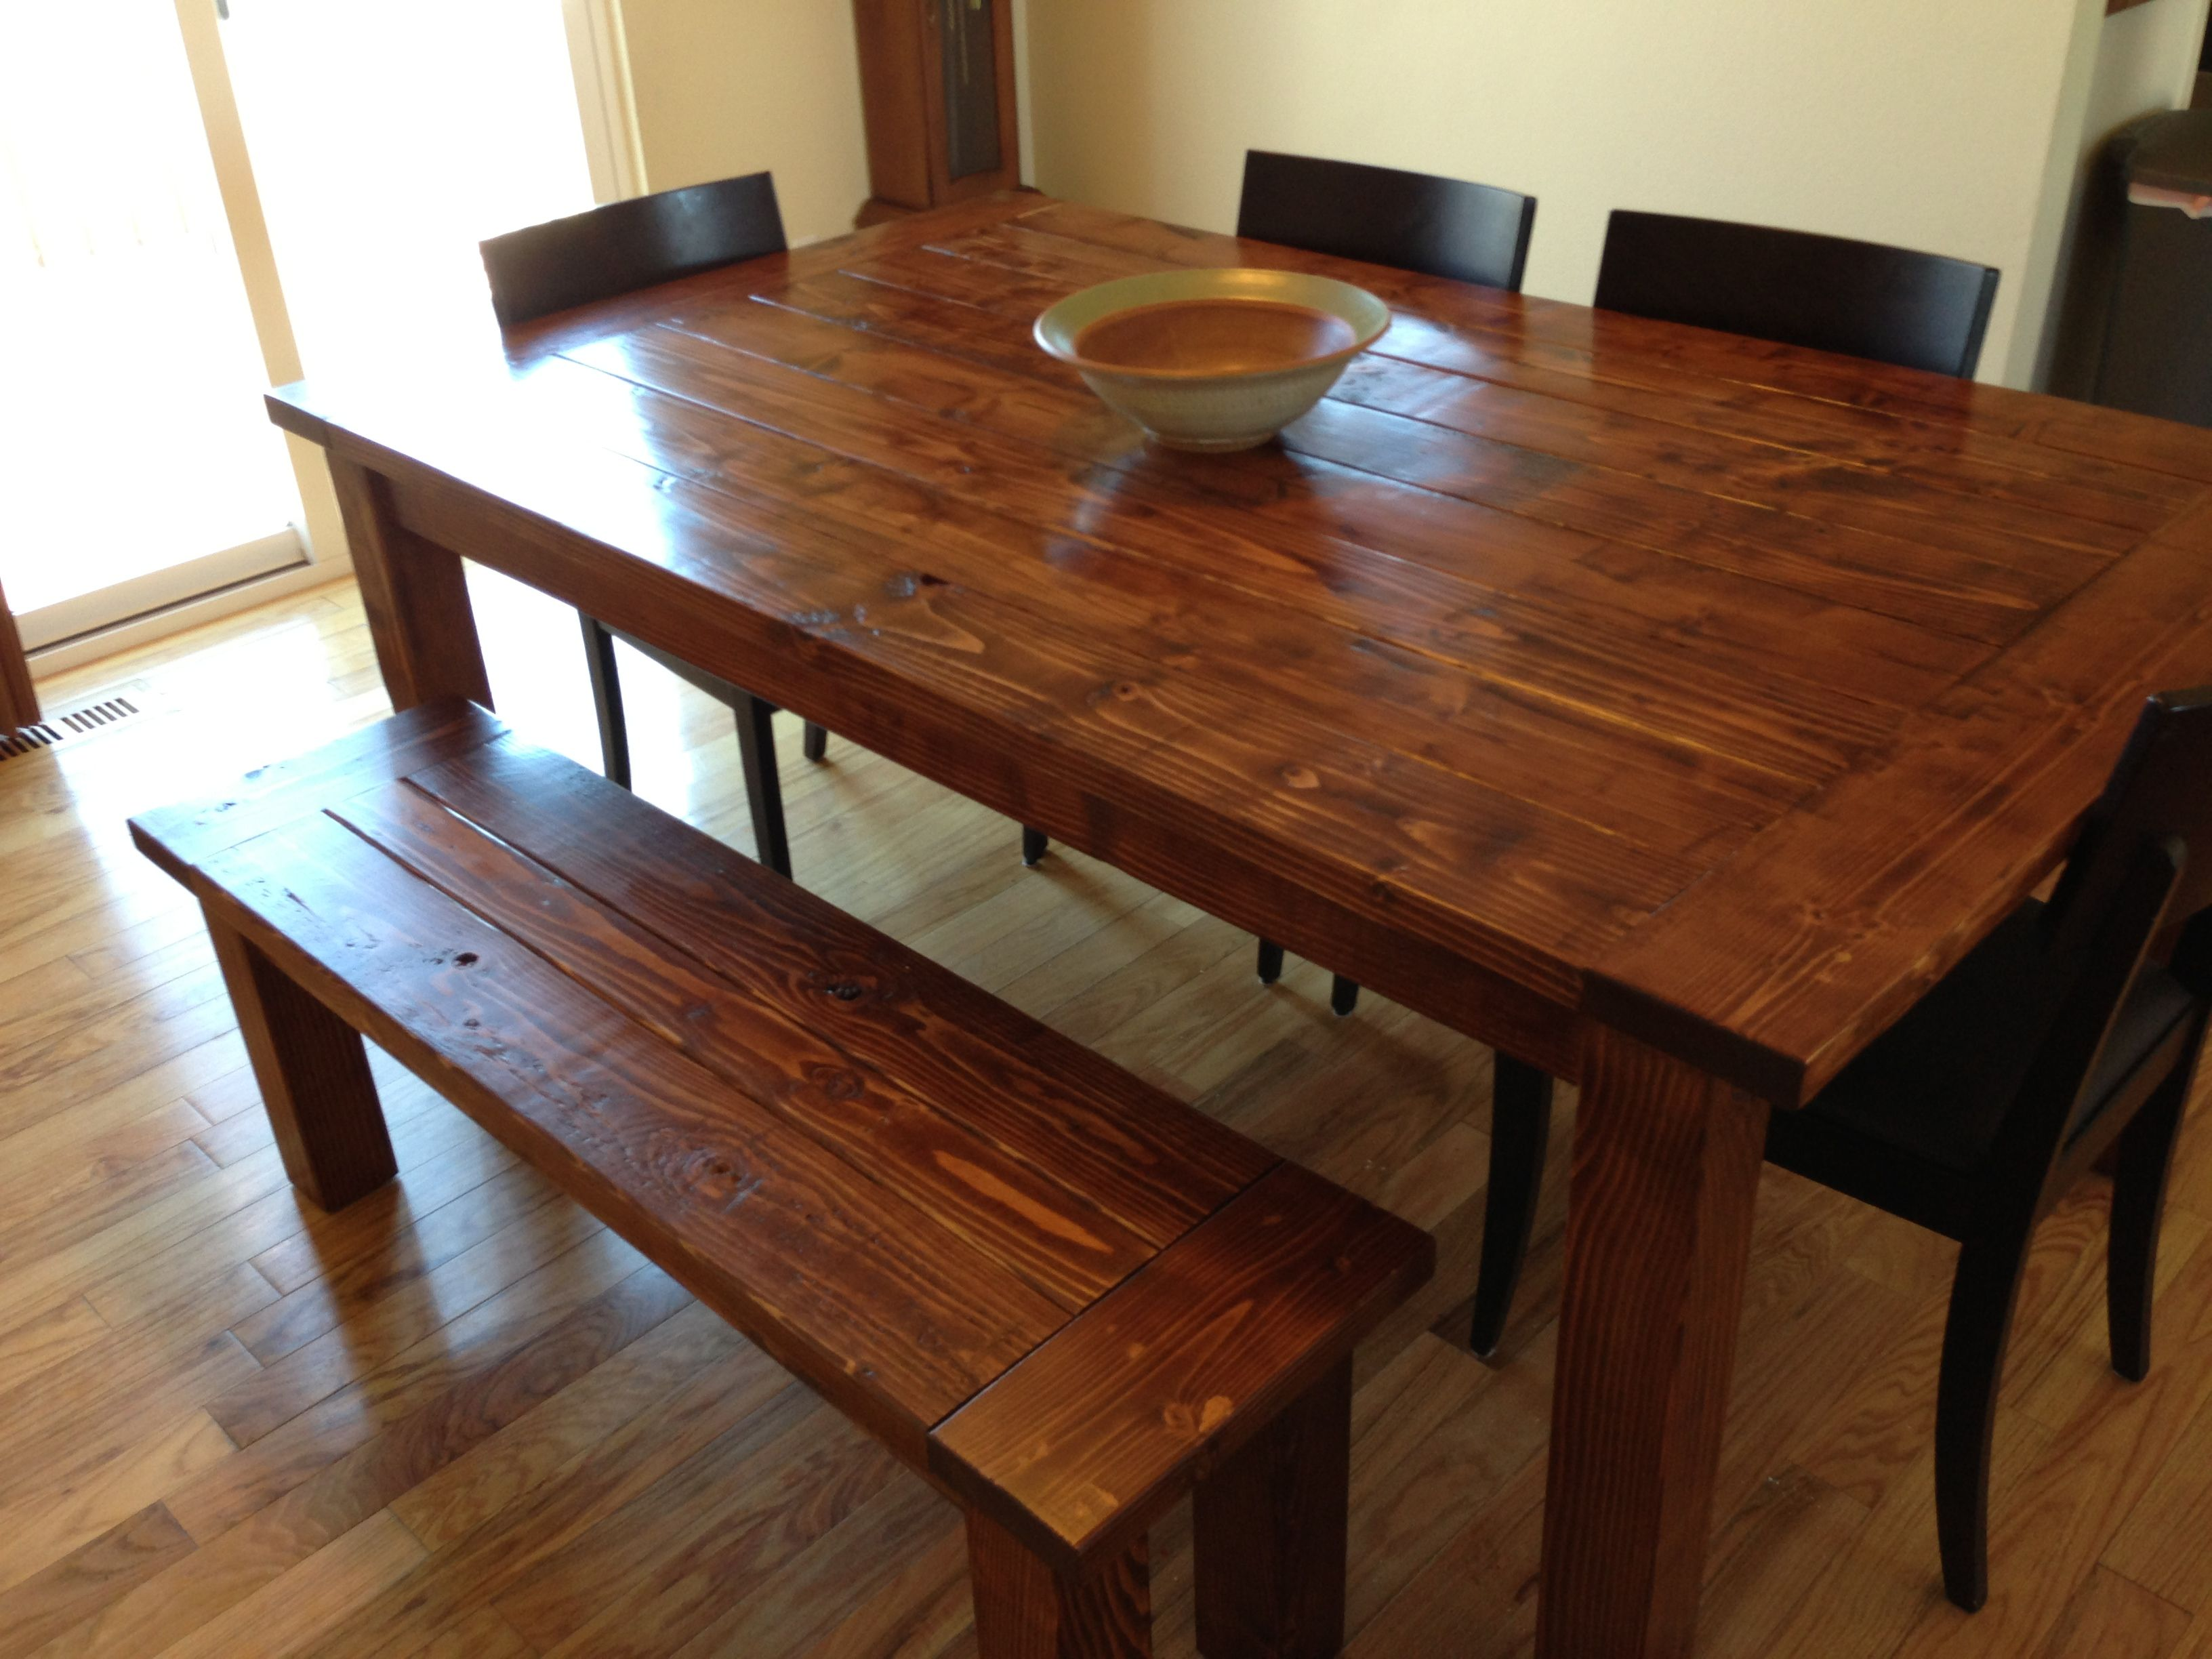 Farmhouse Table And Bench Made From Pine 2x6 2x4 And 4x4